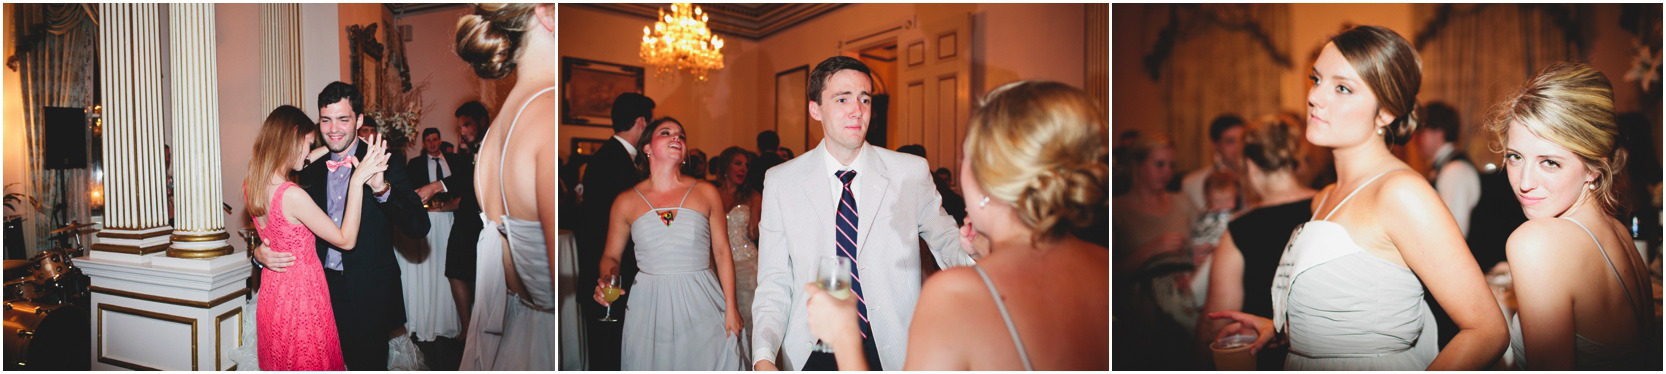 reception_spedale_neworleans__100_blogstomped